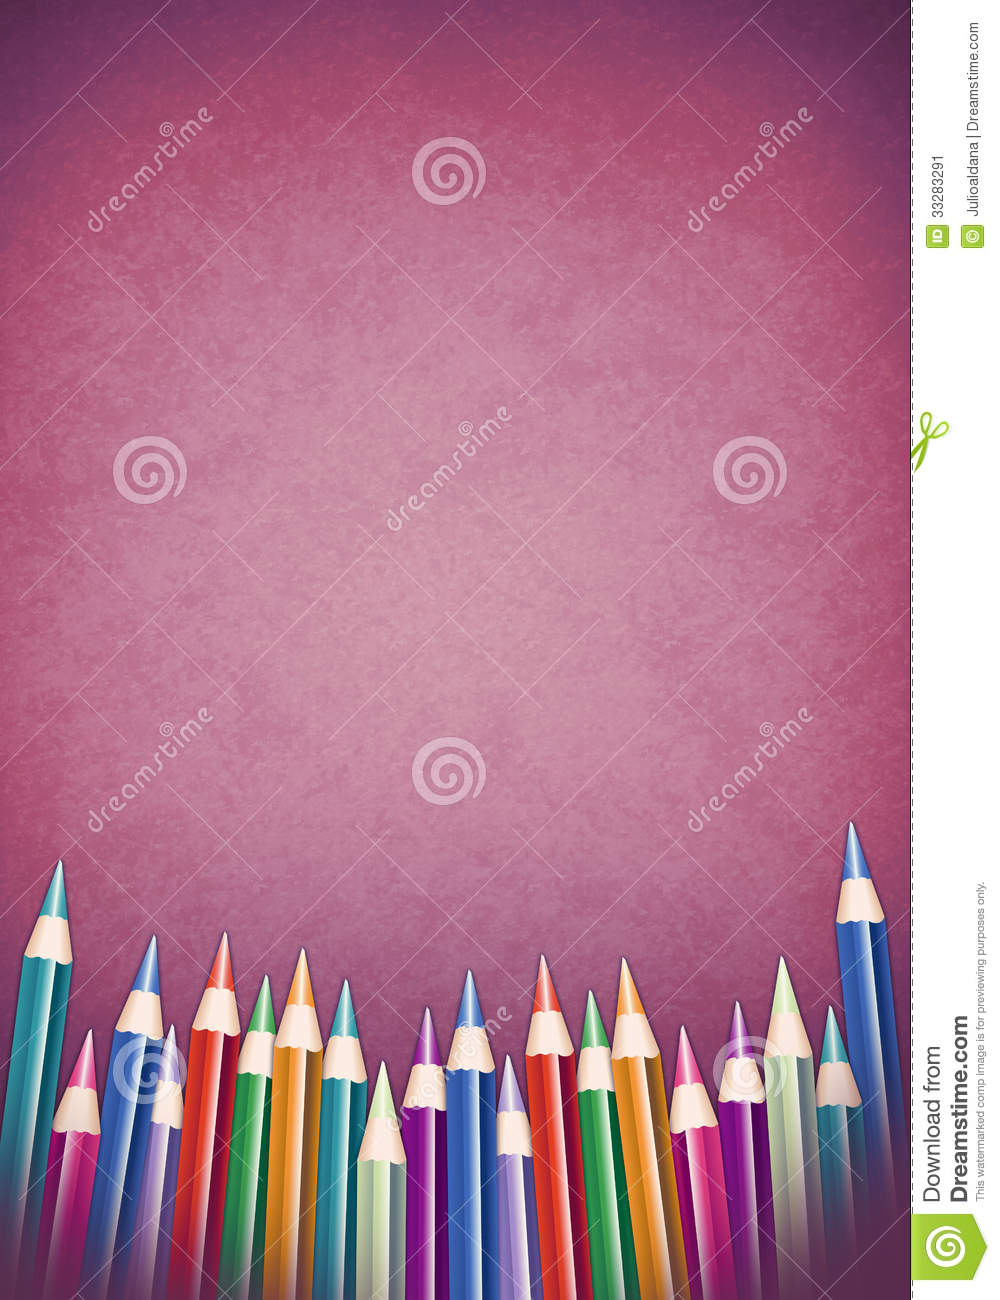 background with colored pencils - school poster template stock illustration